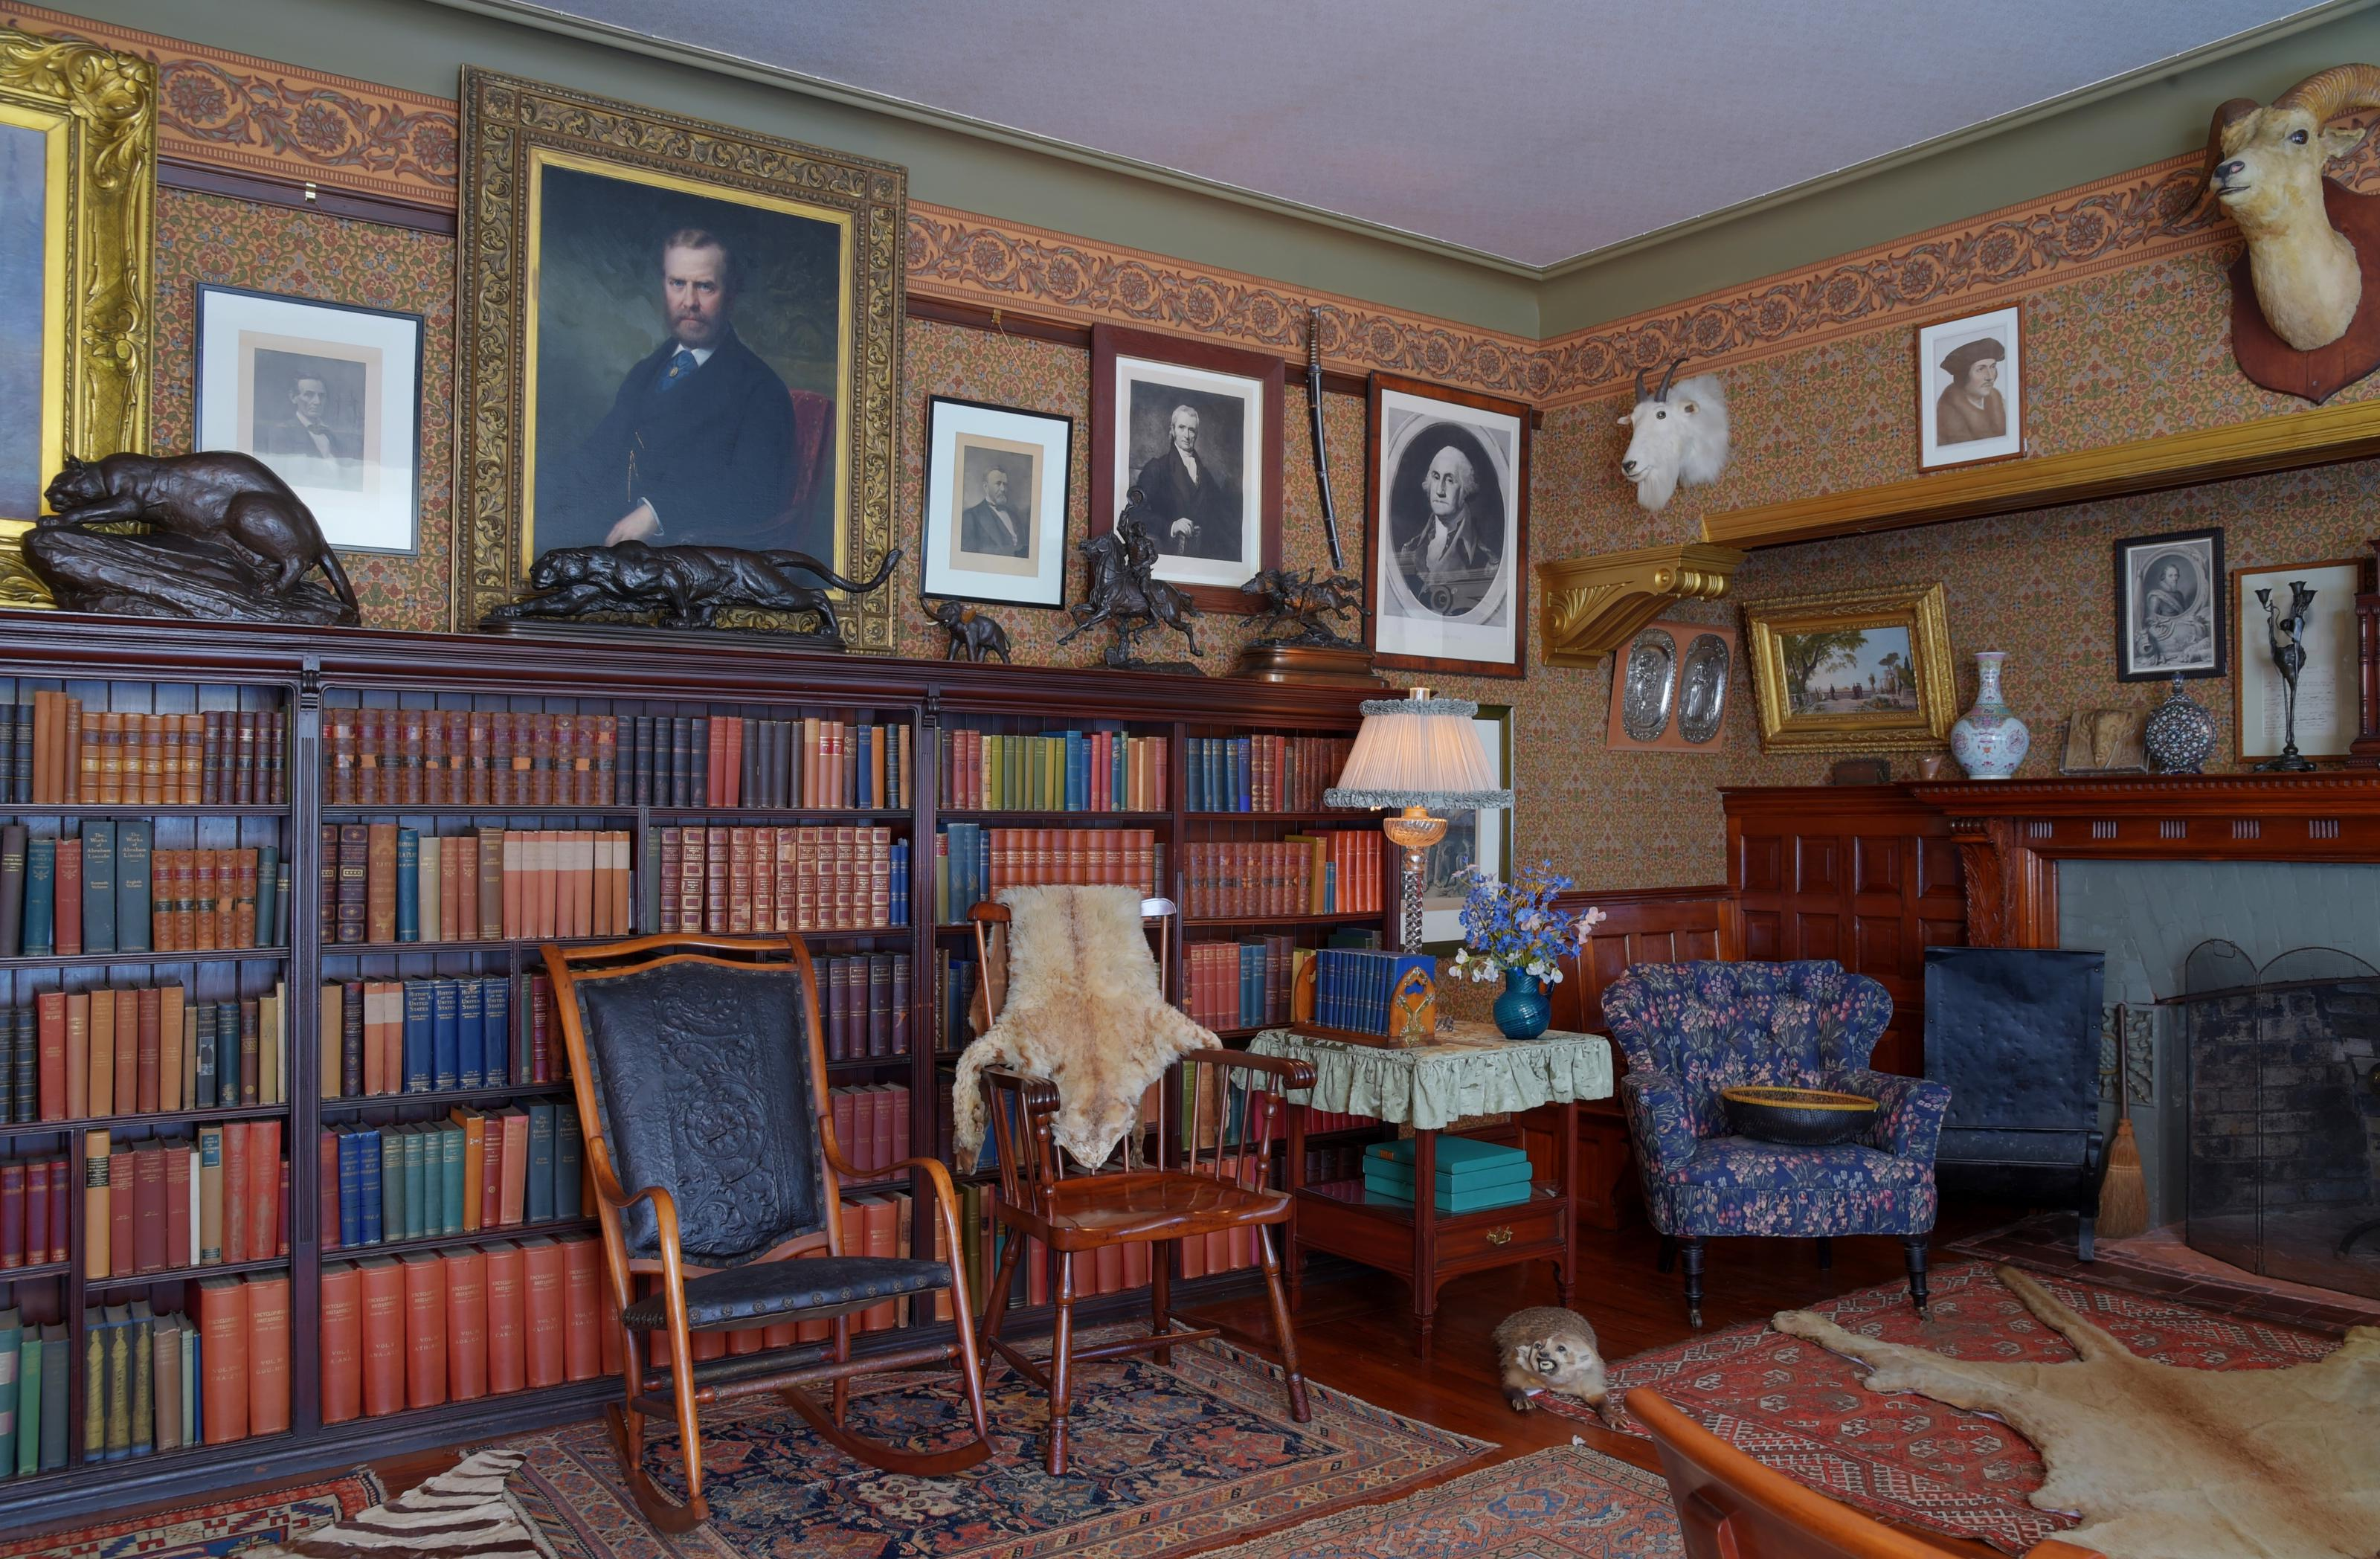 A room with books, paintings, hunting trophies, chairs, and a fireplace.The library.